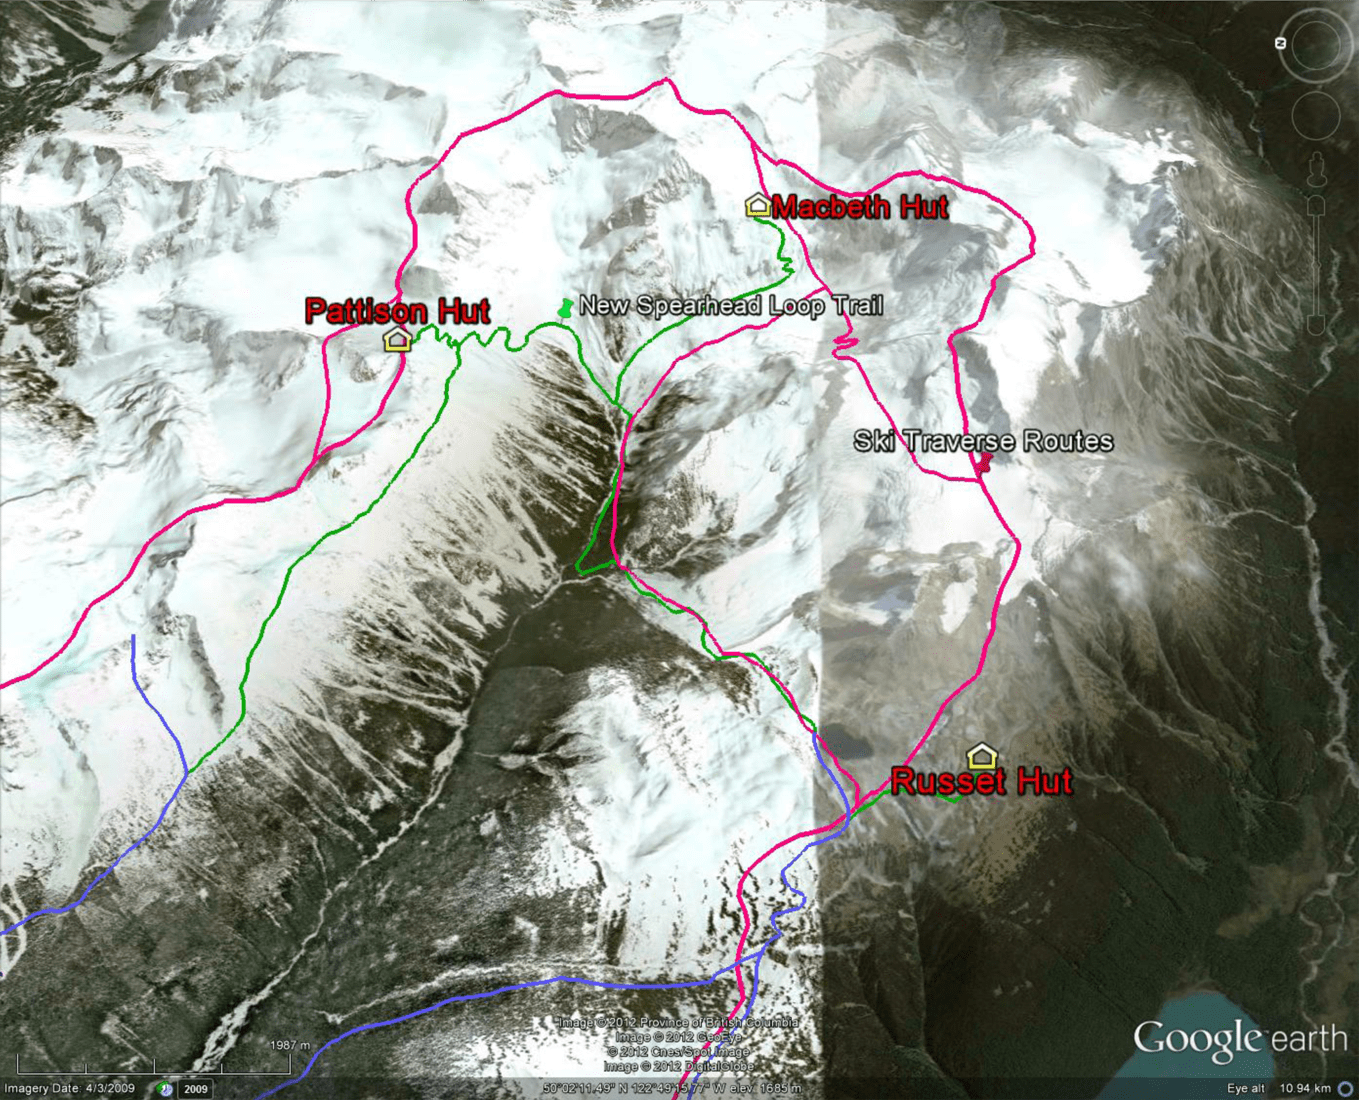 spearhead, traverse, route, map, whistler, back country, hut-to-hut, pattison, macbeth